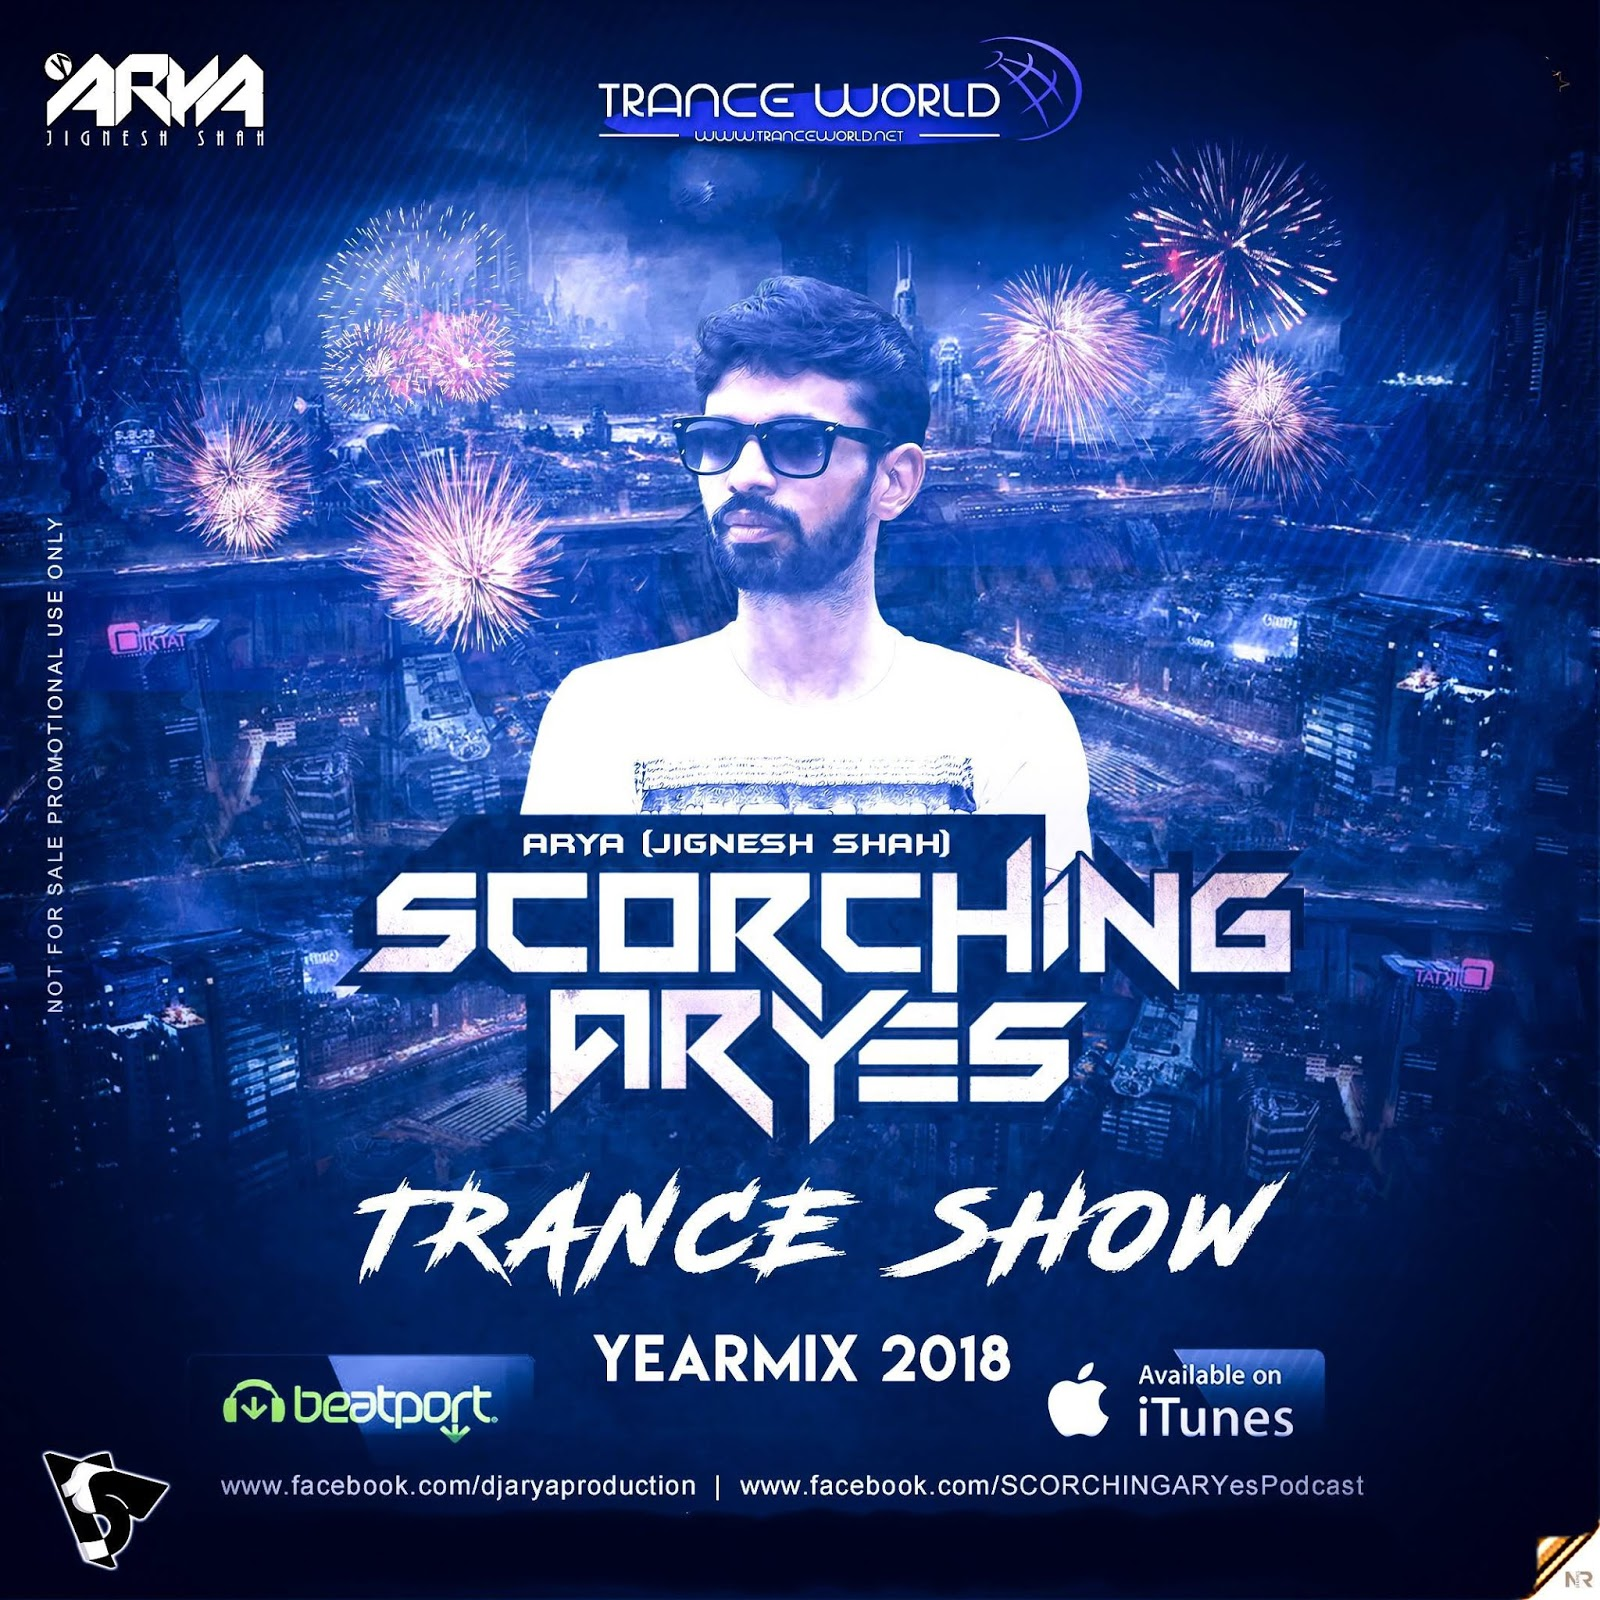 SCORCHING ARYes YearMIX 2018 - ARYA (Jignesh Shah)